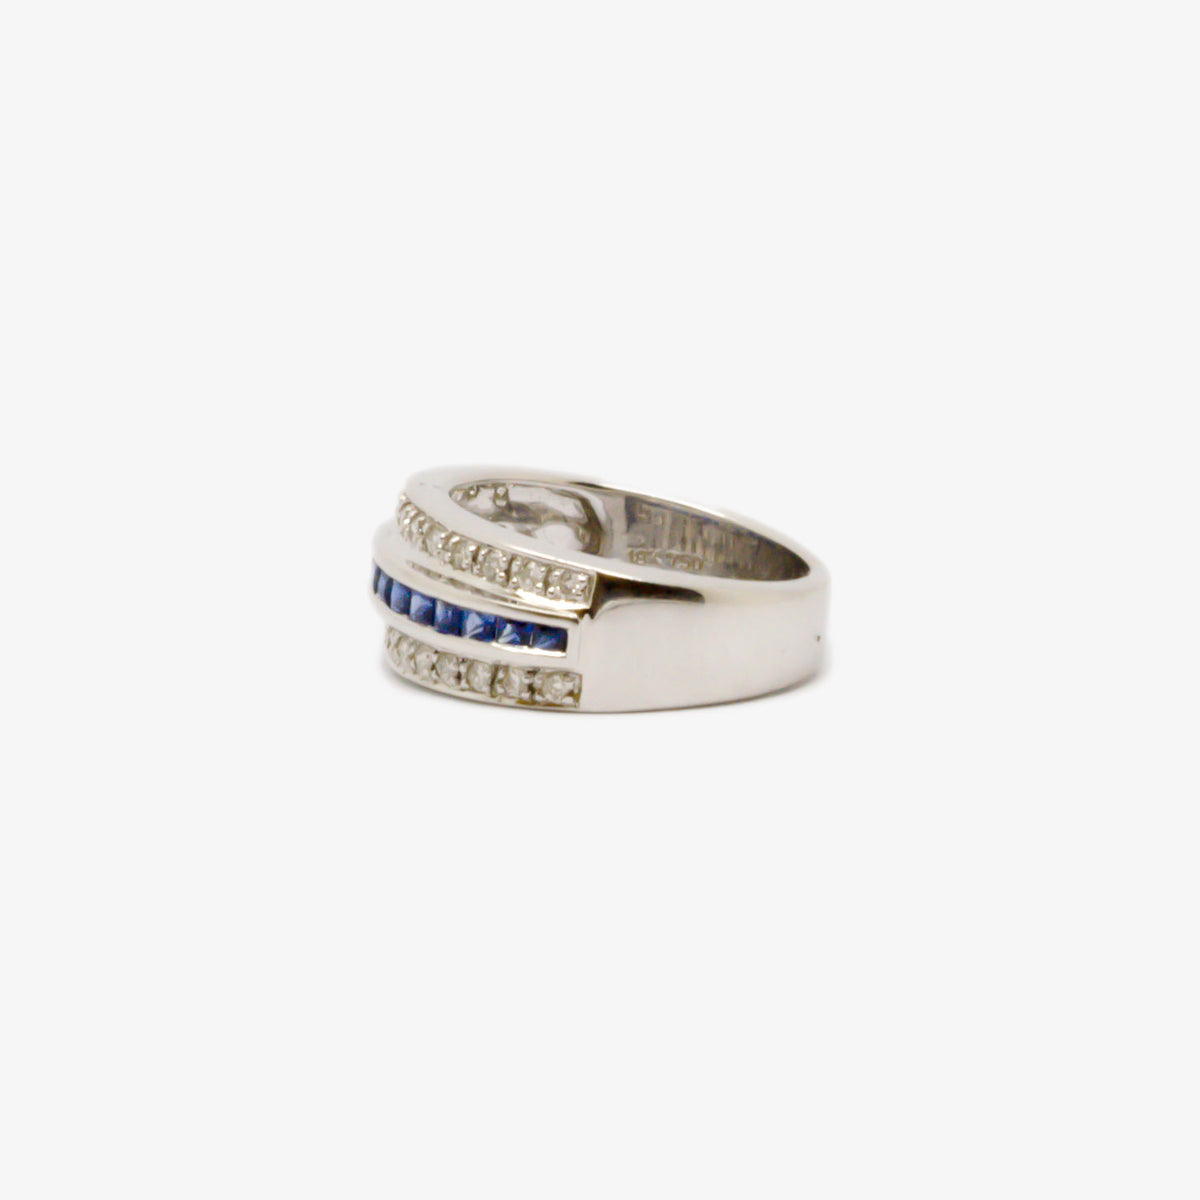 Wide White Gold, Diamond & Sapphire Ring